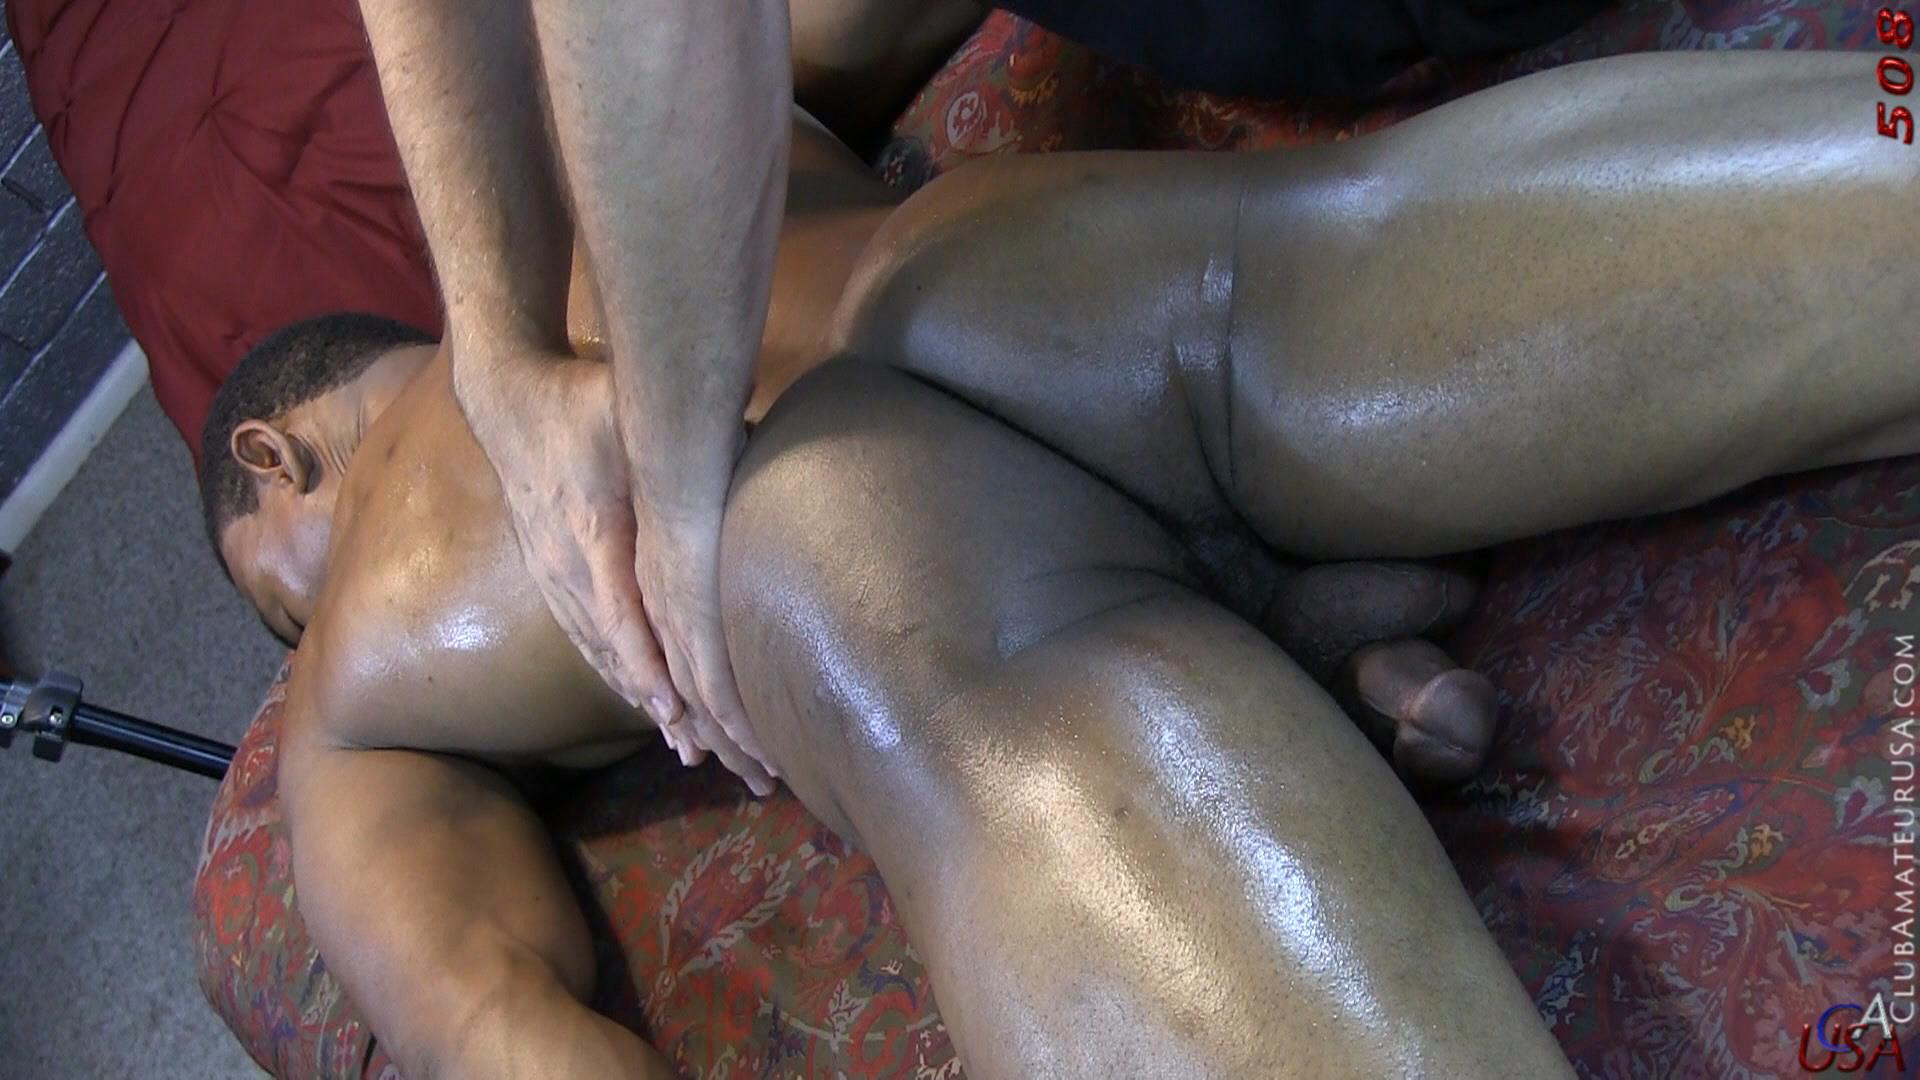 Club Amateur USA Gracen Straight Big Black Cock Getting Sucked With Cum Amateur Gay Porn 05 Straight Ghetto Thug Gets A Massage With A Happy Ending From A Guy